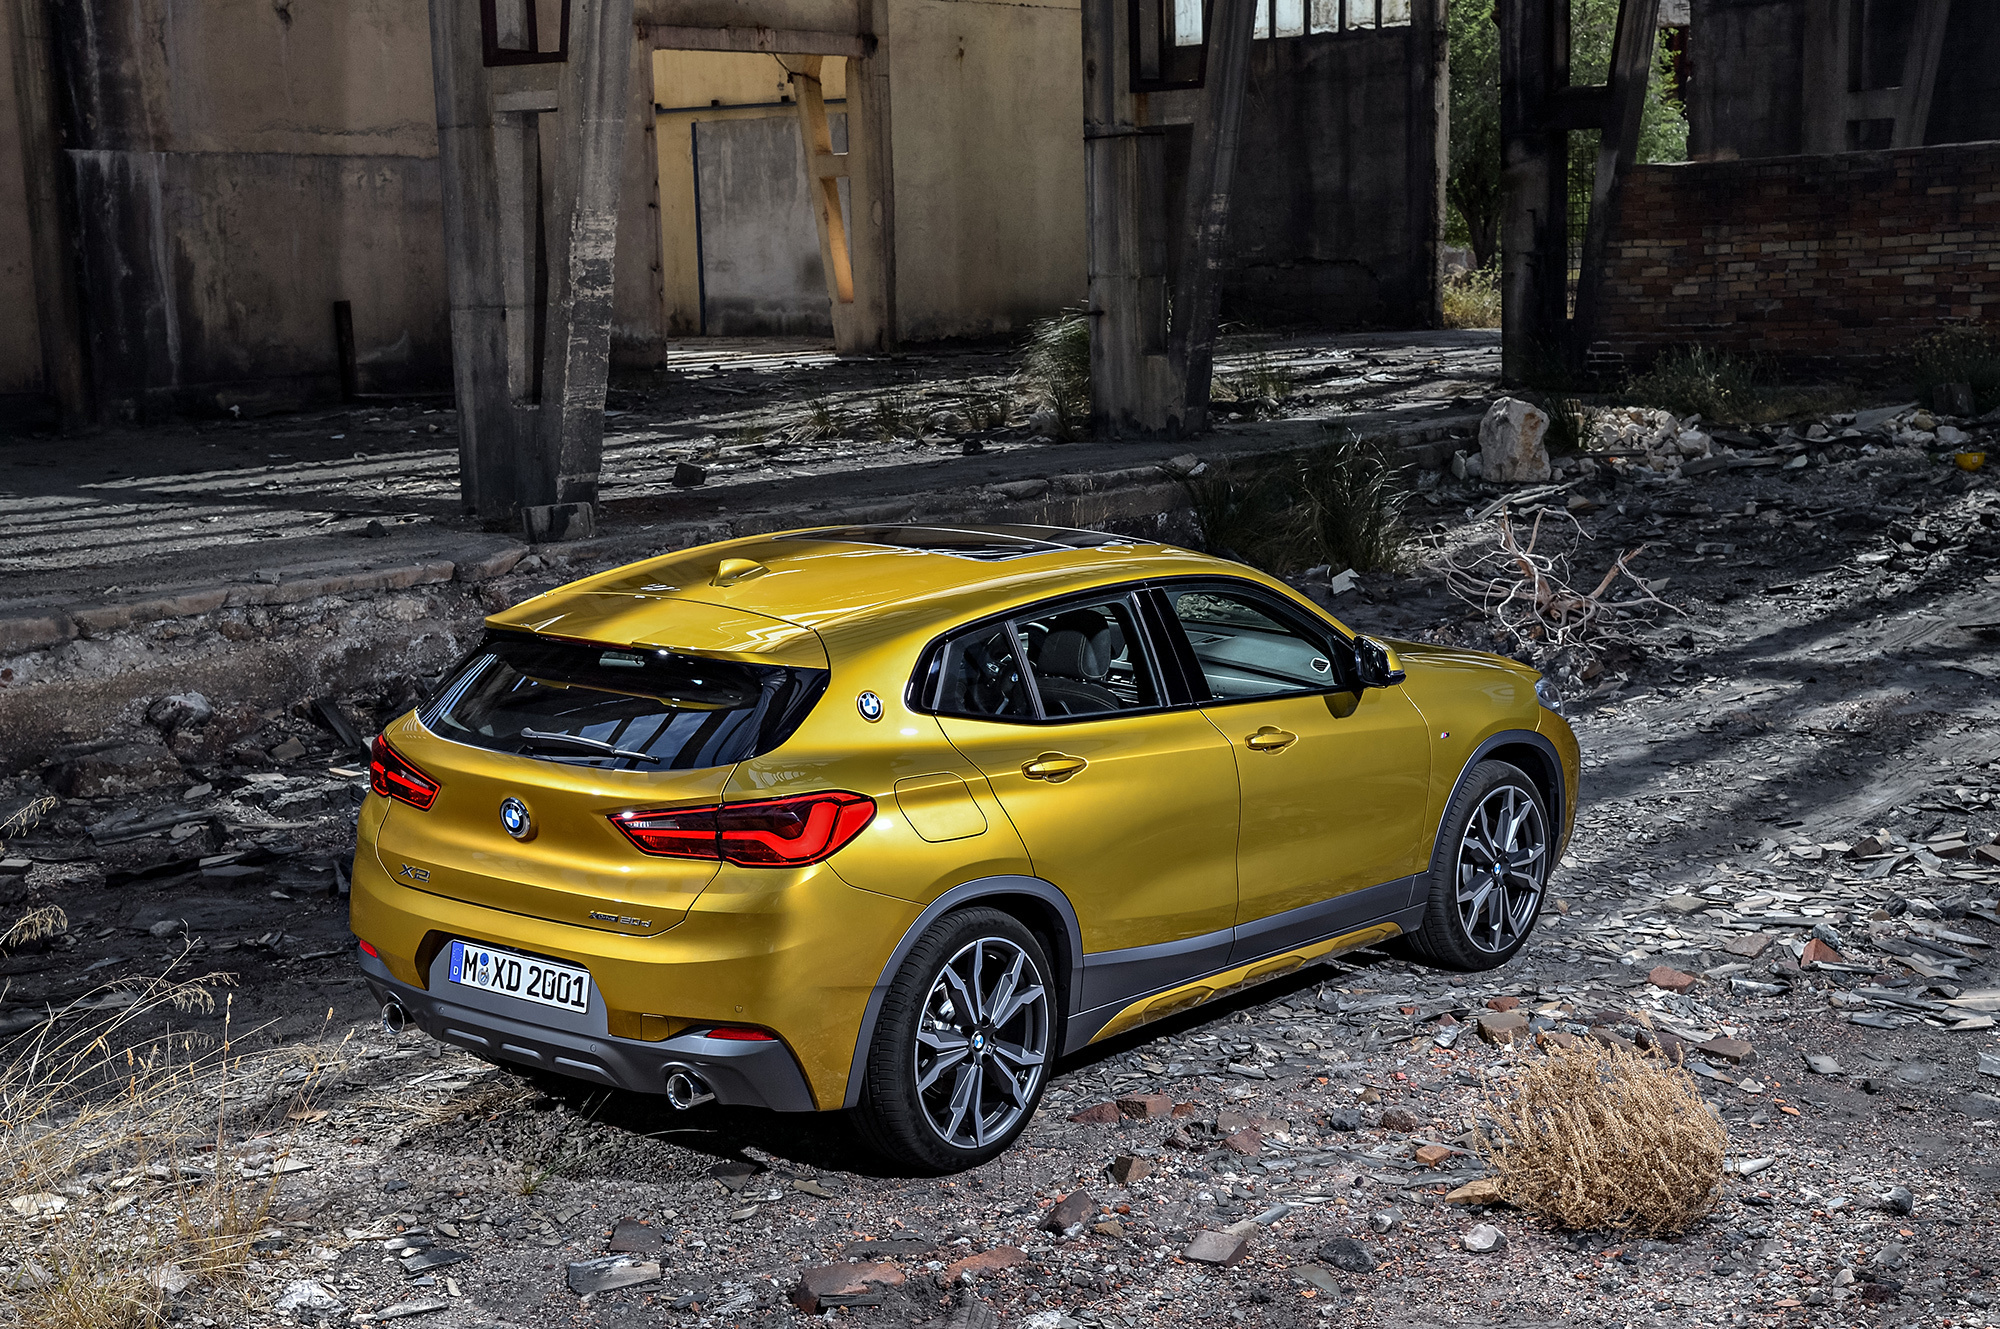 BMW X2 2018 Wallpapers HQ